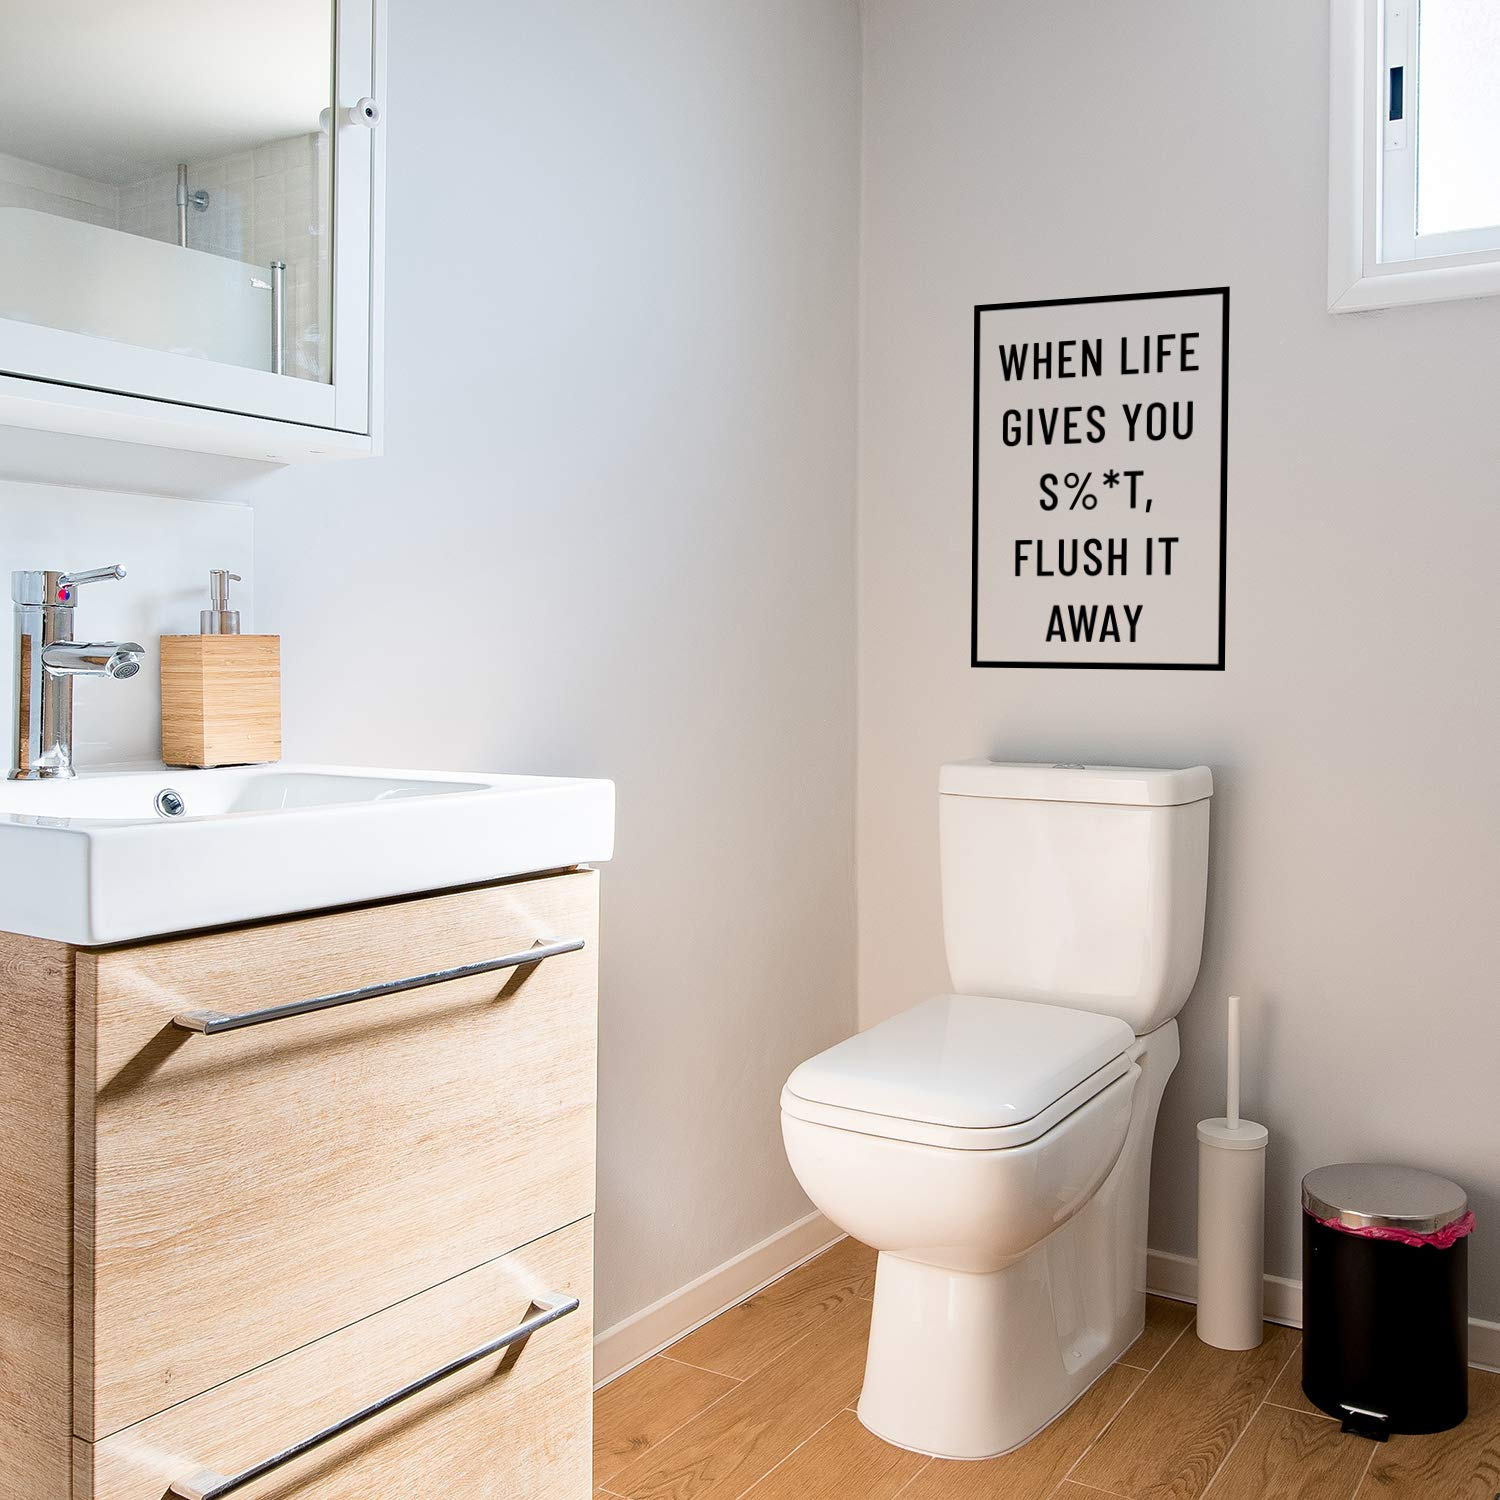 Modern Sarcastic Household Apartment Adhesive Pulse Vinyl When Life Gives You Sh!t Flush It Away Vinyl Wall Art Decal Witty Adult Humor Home Living Room Bedroom Bathroom Sticker Decoration 23 x 16